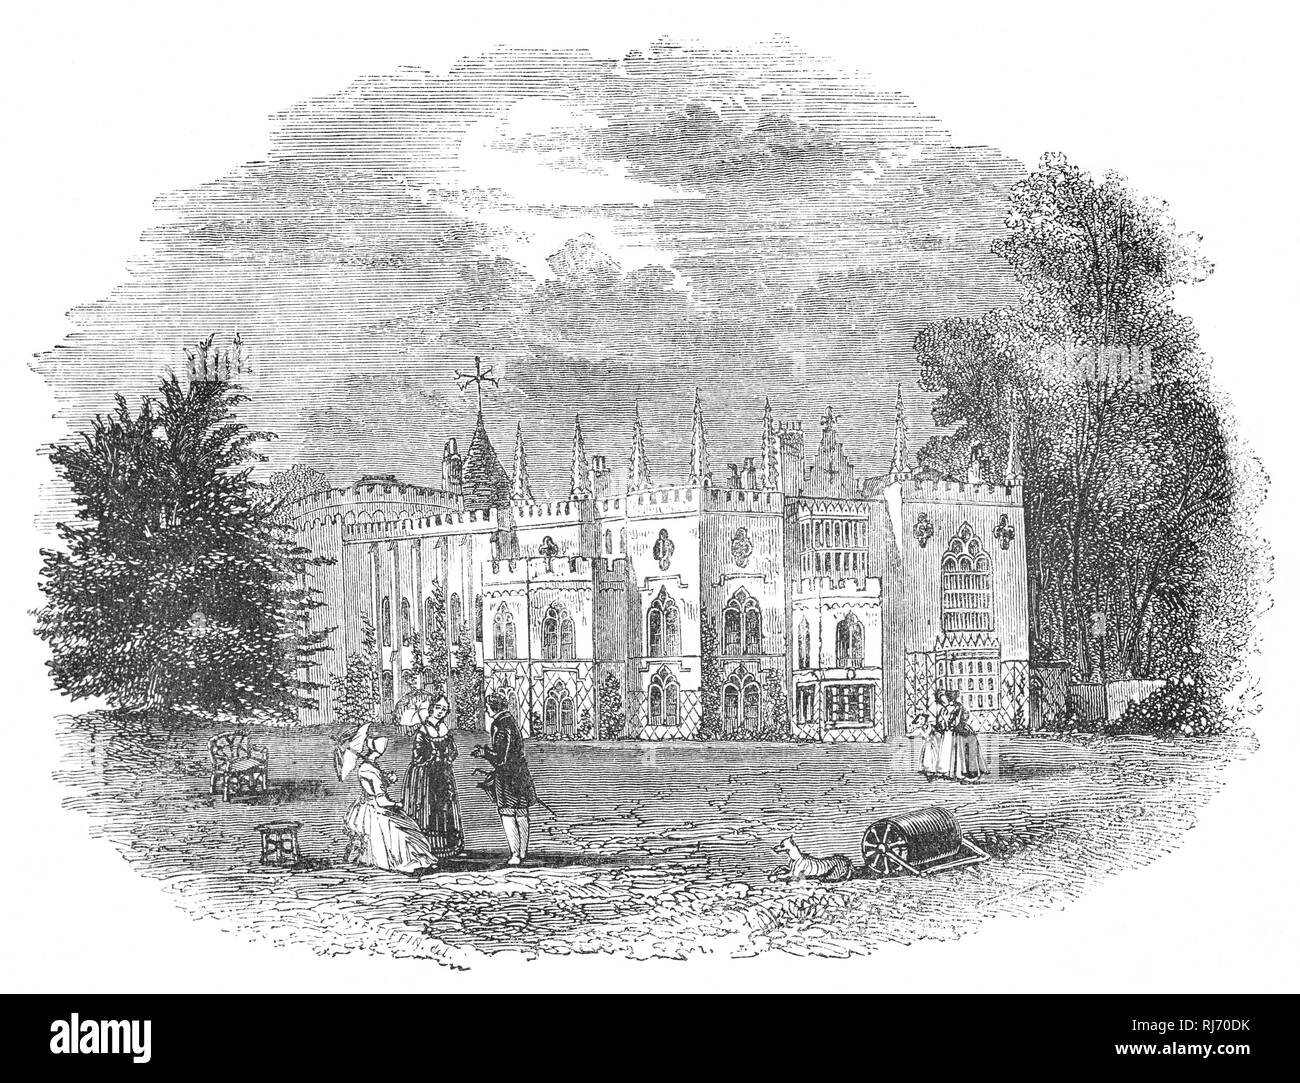 Strawberry Hill House built in Twickenham, south-west London, reviving the Gothic style some decades before  Victorian successors. It was built by Horatio Walpole, 4th Earl of Orford (1717-1797), also known as Horace Walpole, the son of the first British Prime Minister, Sir Robert Walpole, was Whig politician, art historian, man of letters, antiquarian and an English writer whose literary reputation rests on the first Gothic novel, The Castle of Otranto (1764), and his Letters, which are of significant social and political interest. - Stock Image